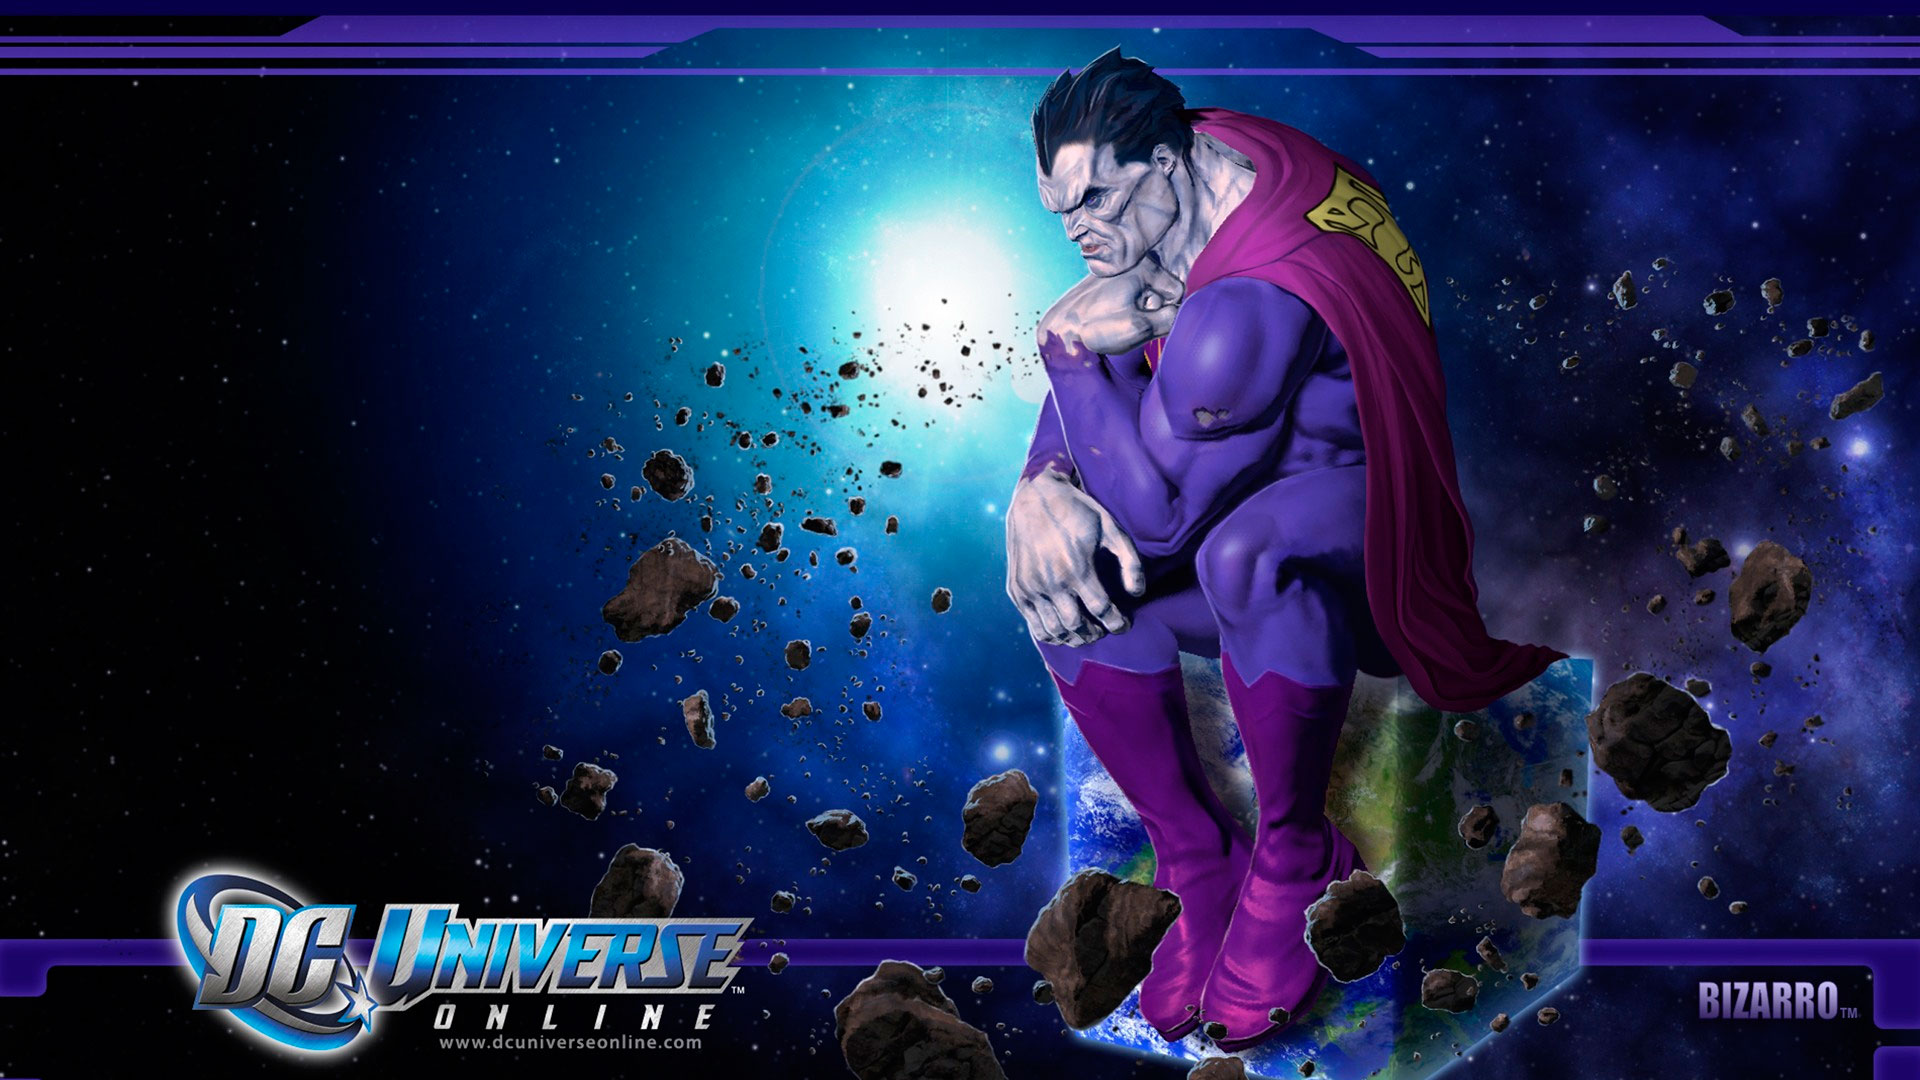 DC Universe Online Wallpapers in HD 1920x1080